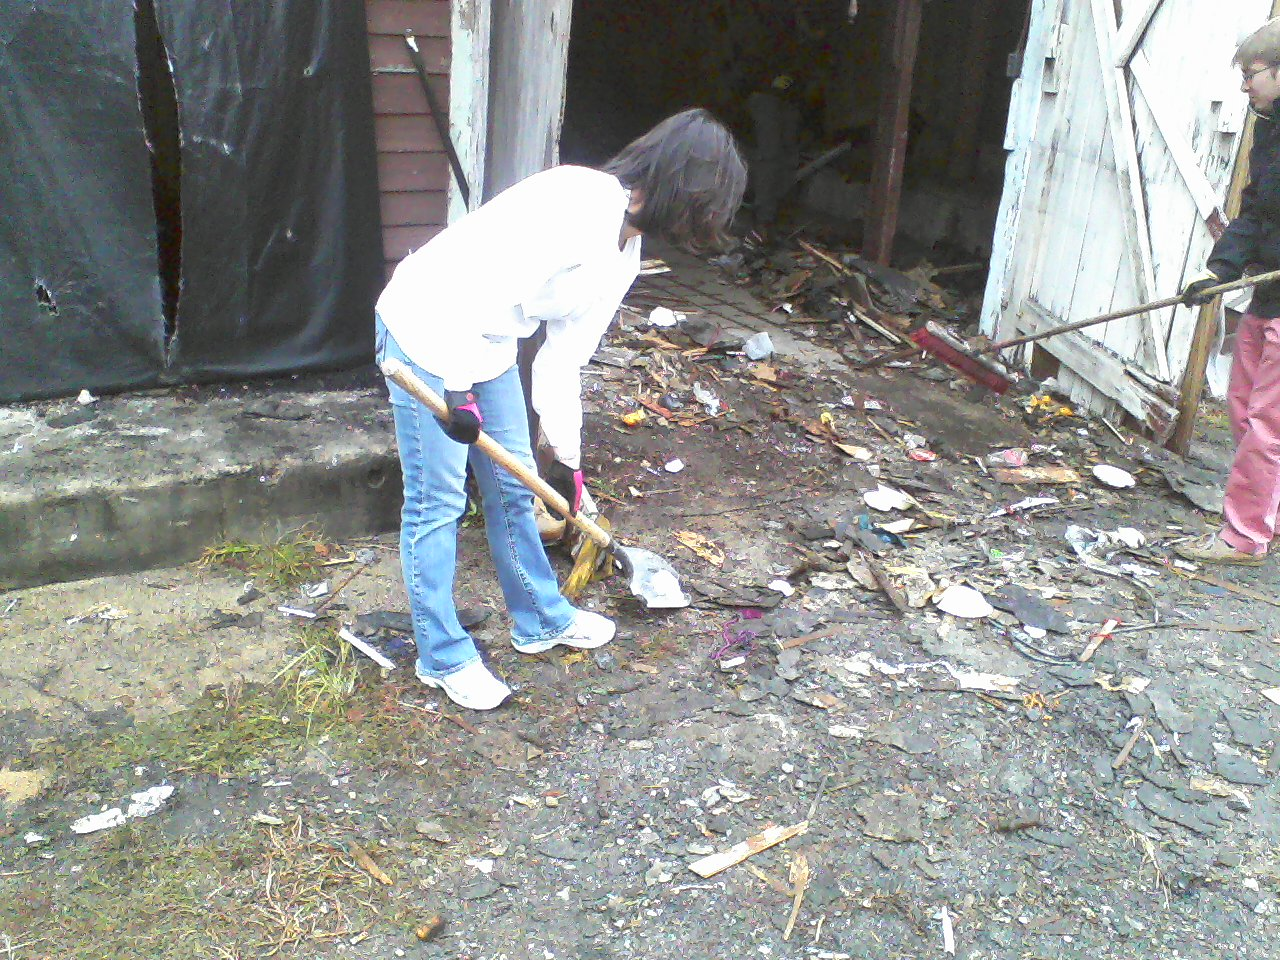 Jenni scoops up debris.